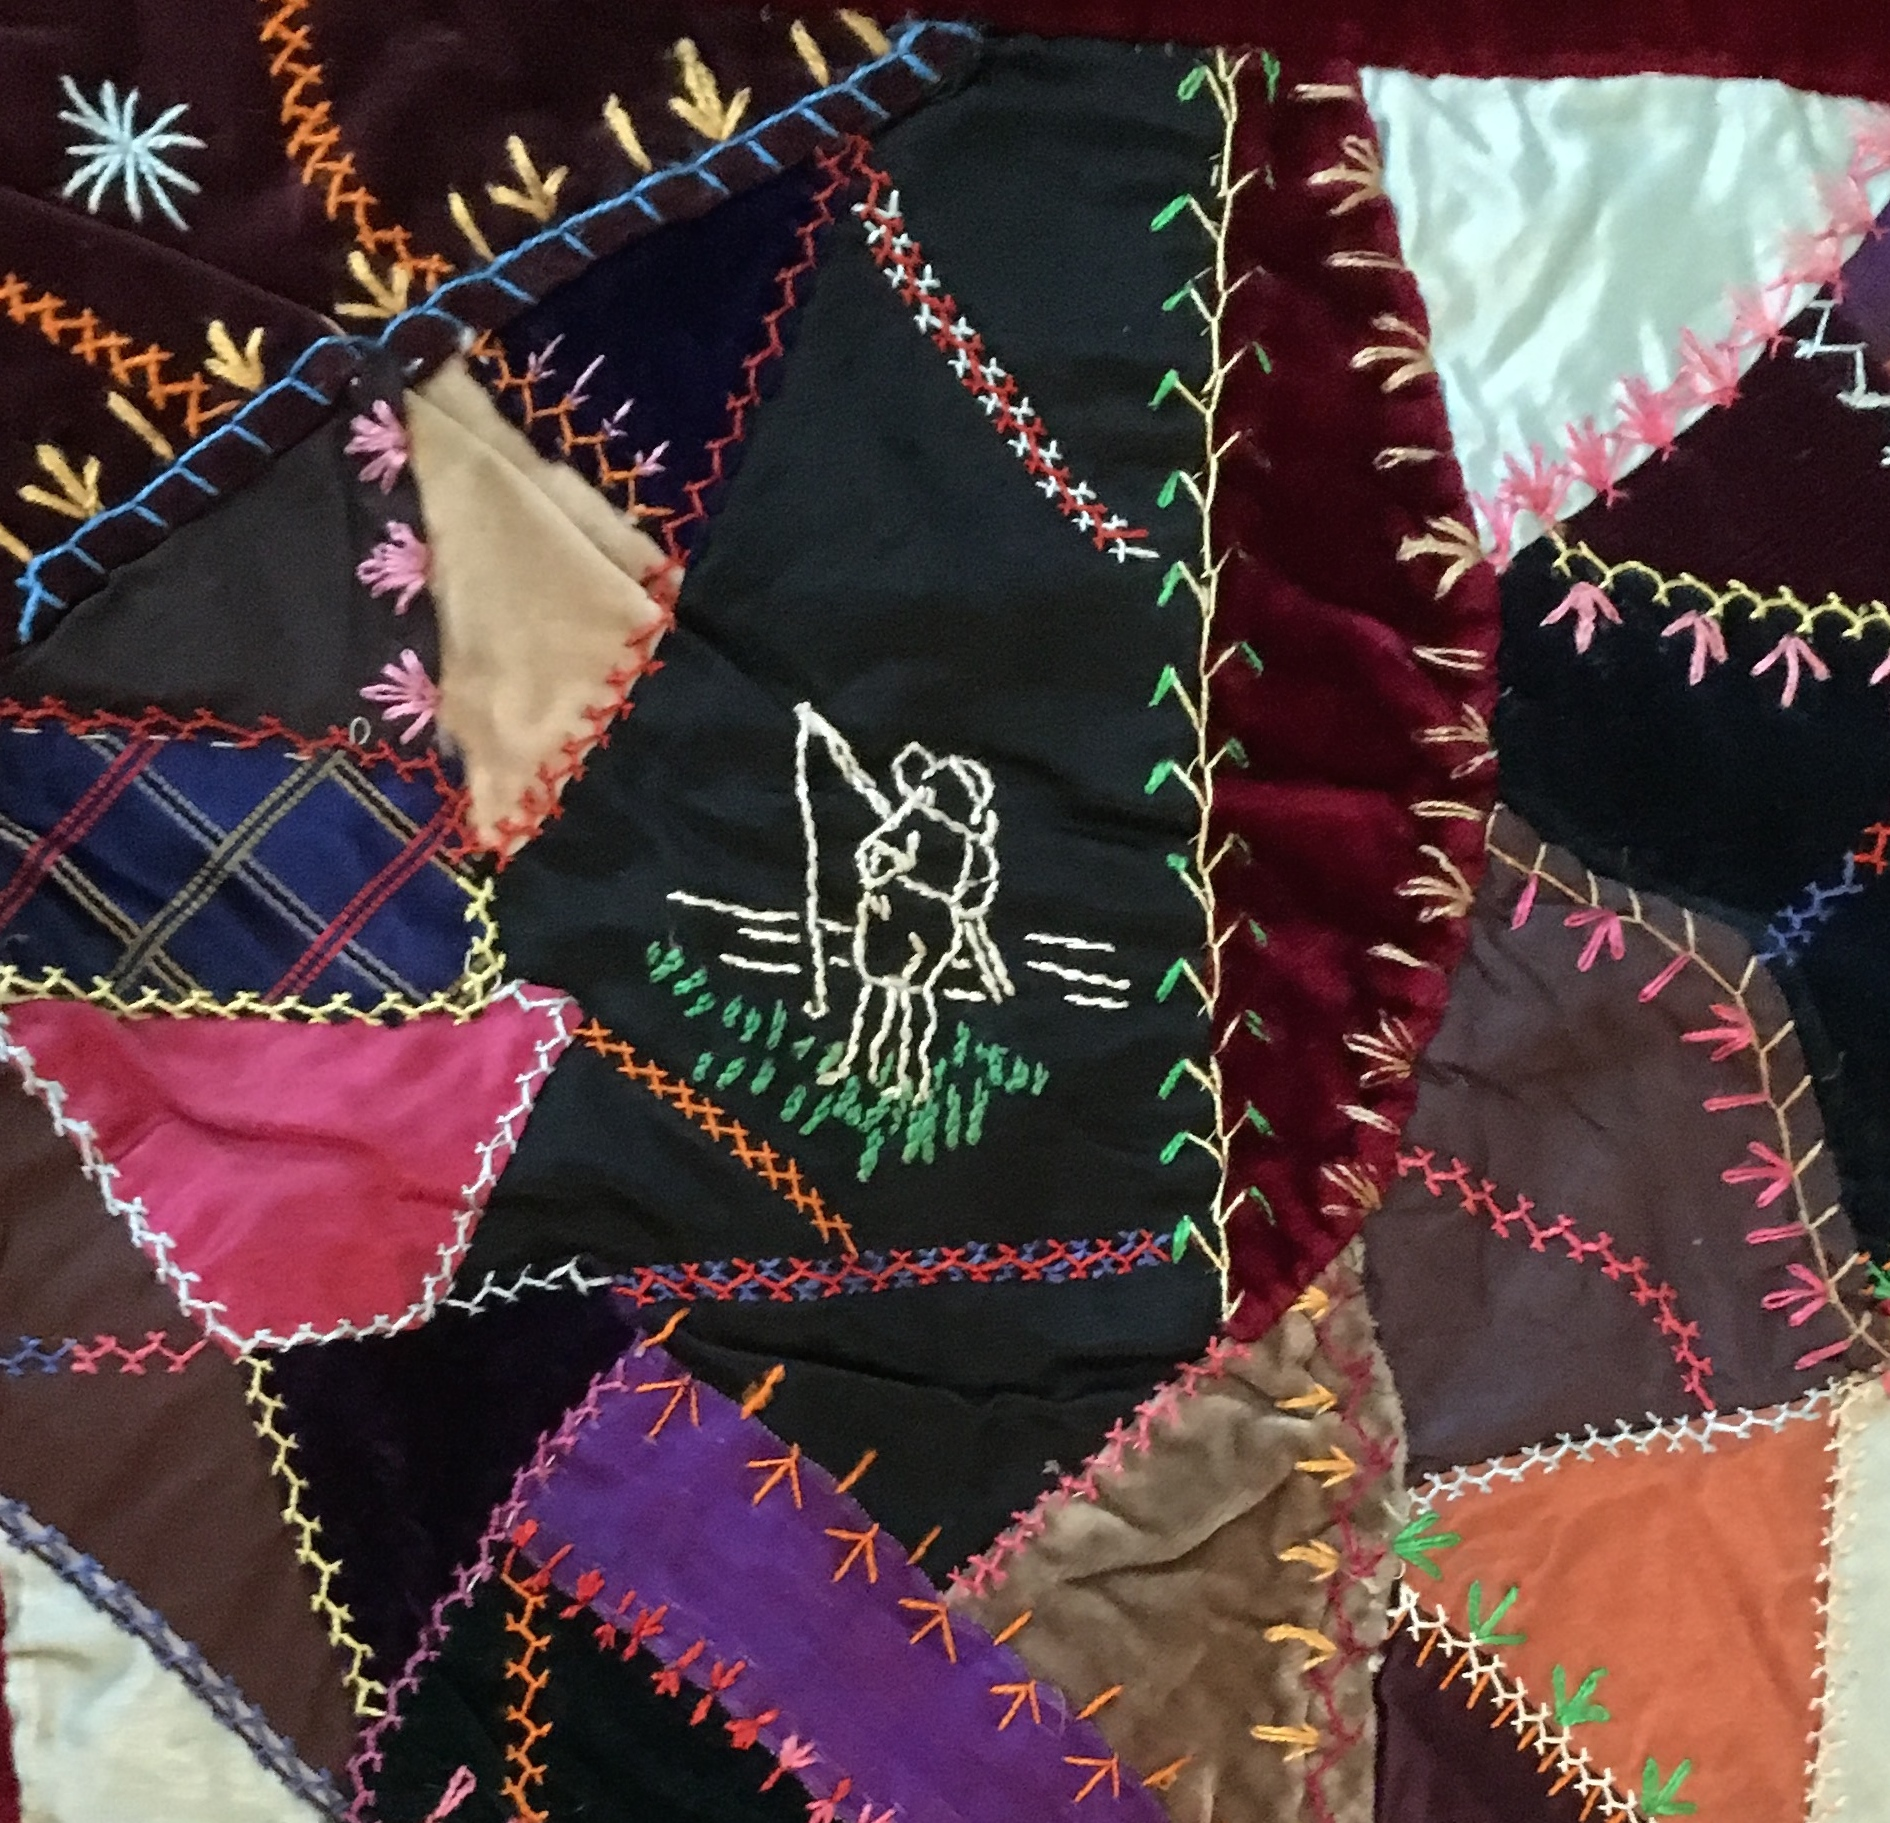 Crazy Quilts were usually made by women of leisure who had time to embellish and funds to afford luxurious fabrics